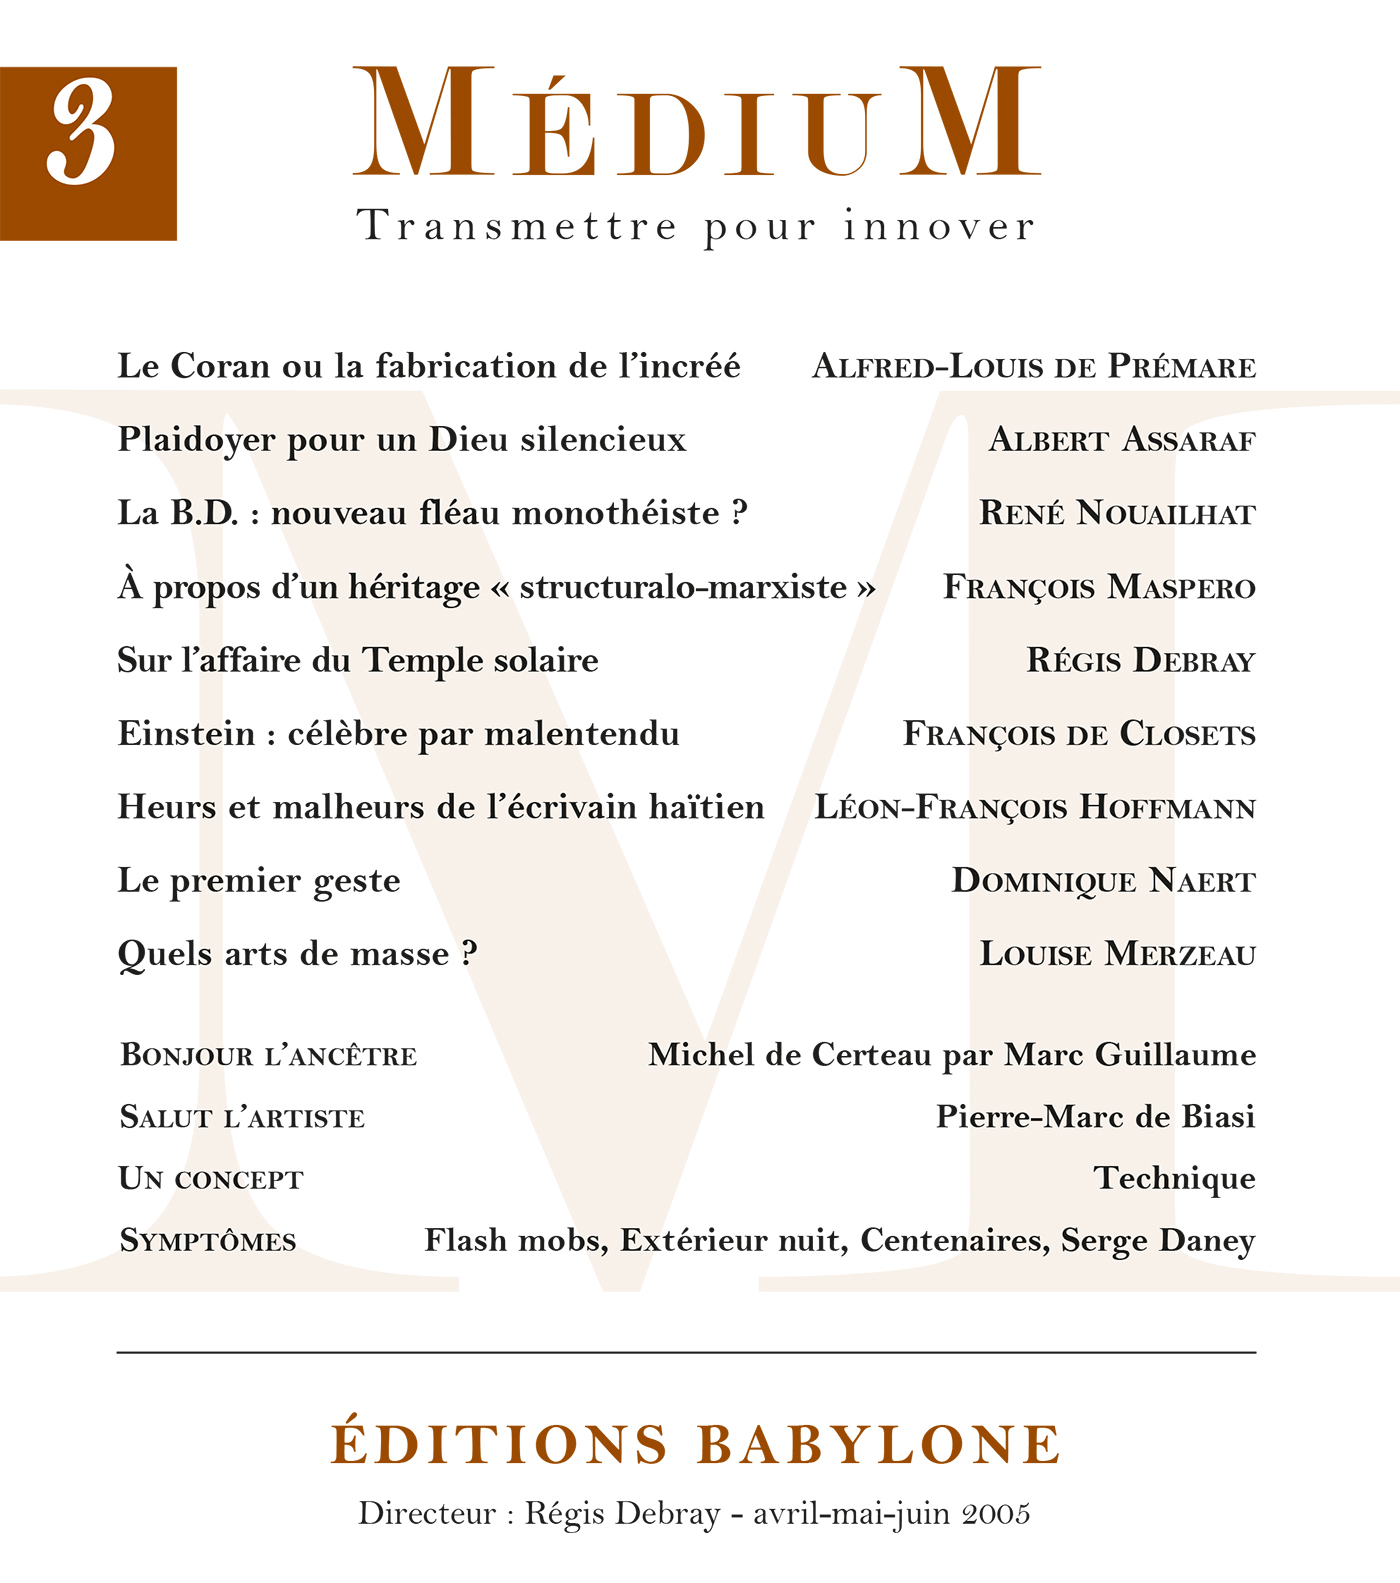 Médium n°3, avril-juin 2005